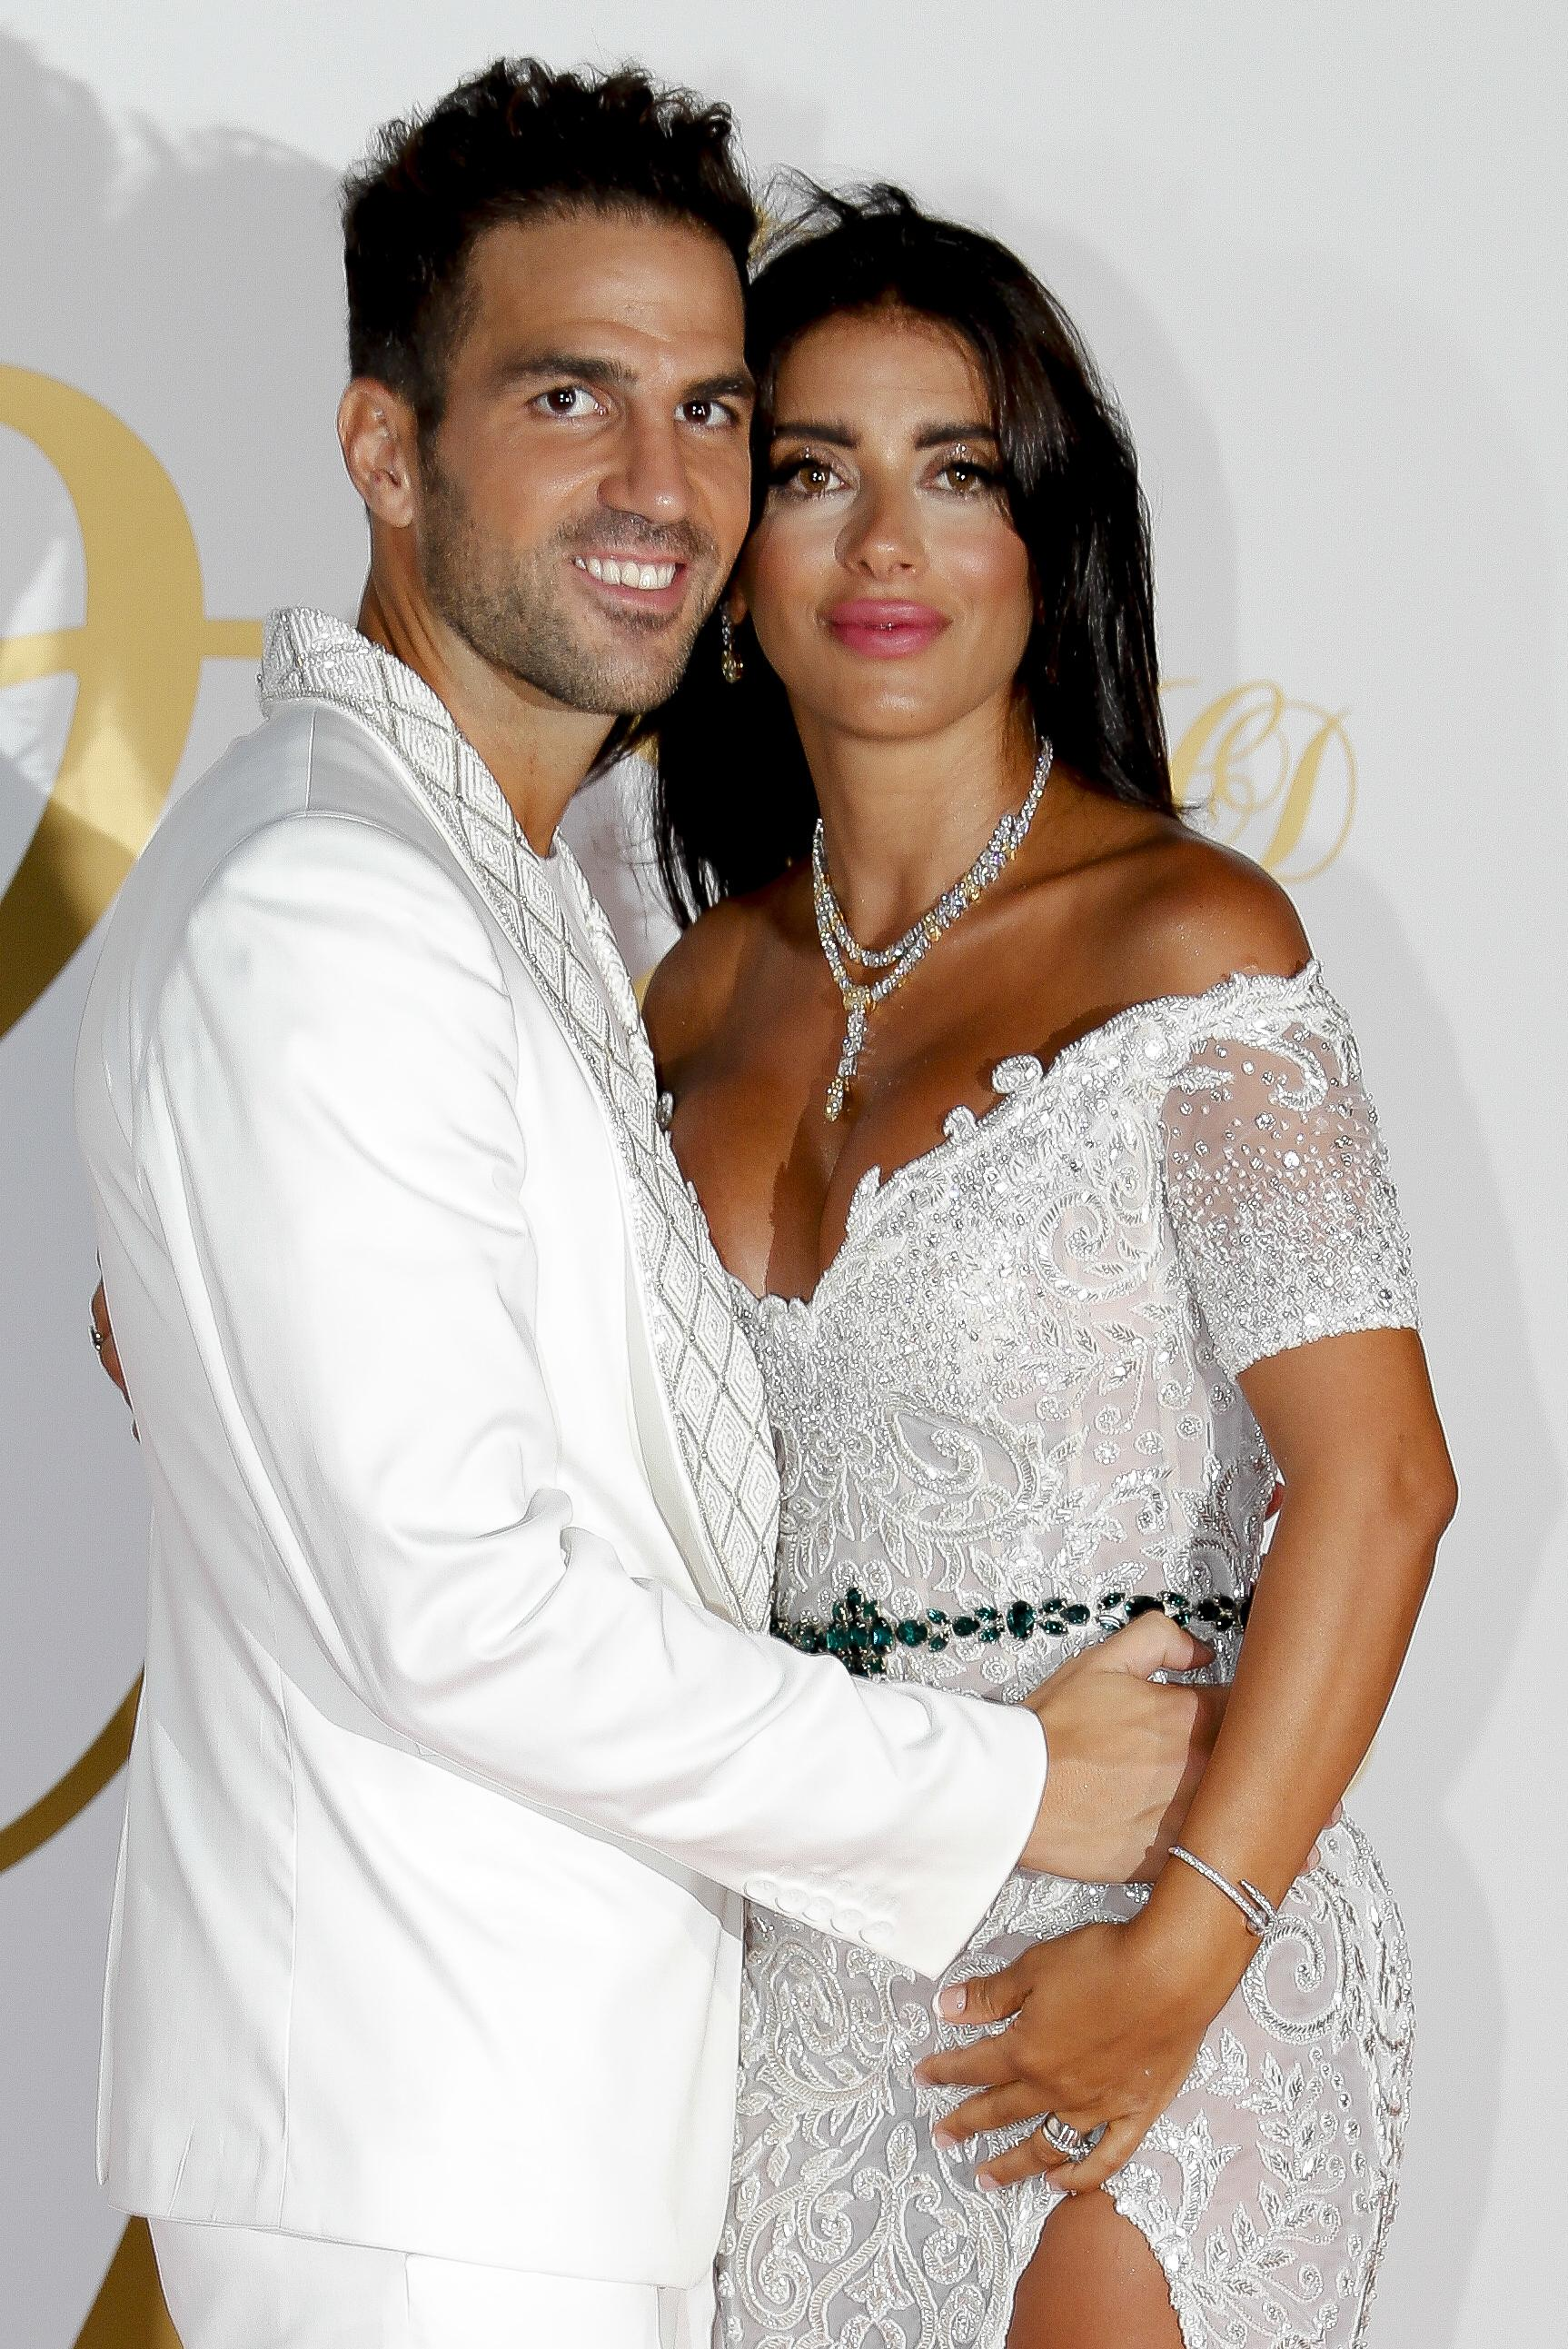 Cesc Fabregas and Daniella Semaan had to put their wedding party plans on hold due to his team-mates' football commitments